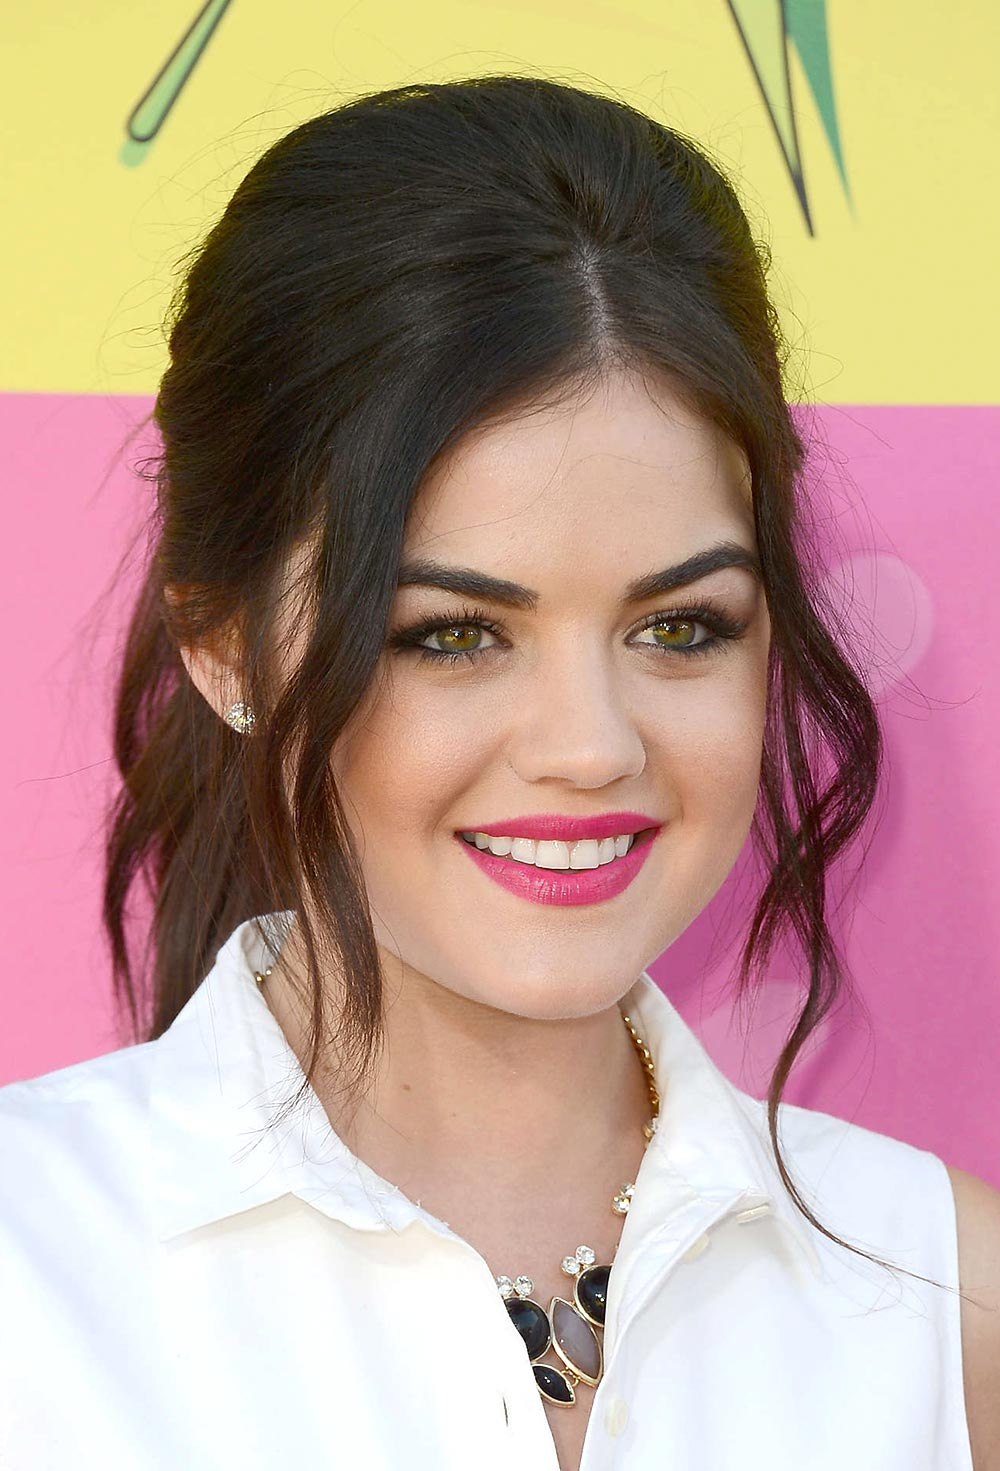 Lucy Hale's Makeup Look at 2013 Kids' Choice Awards